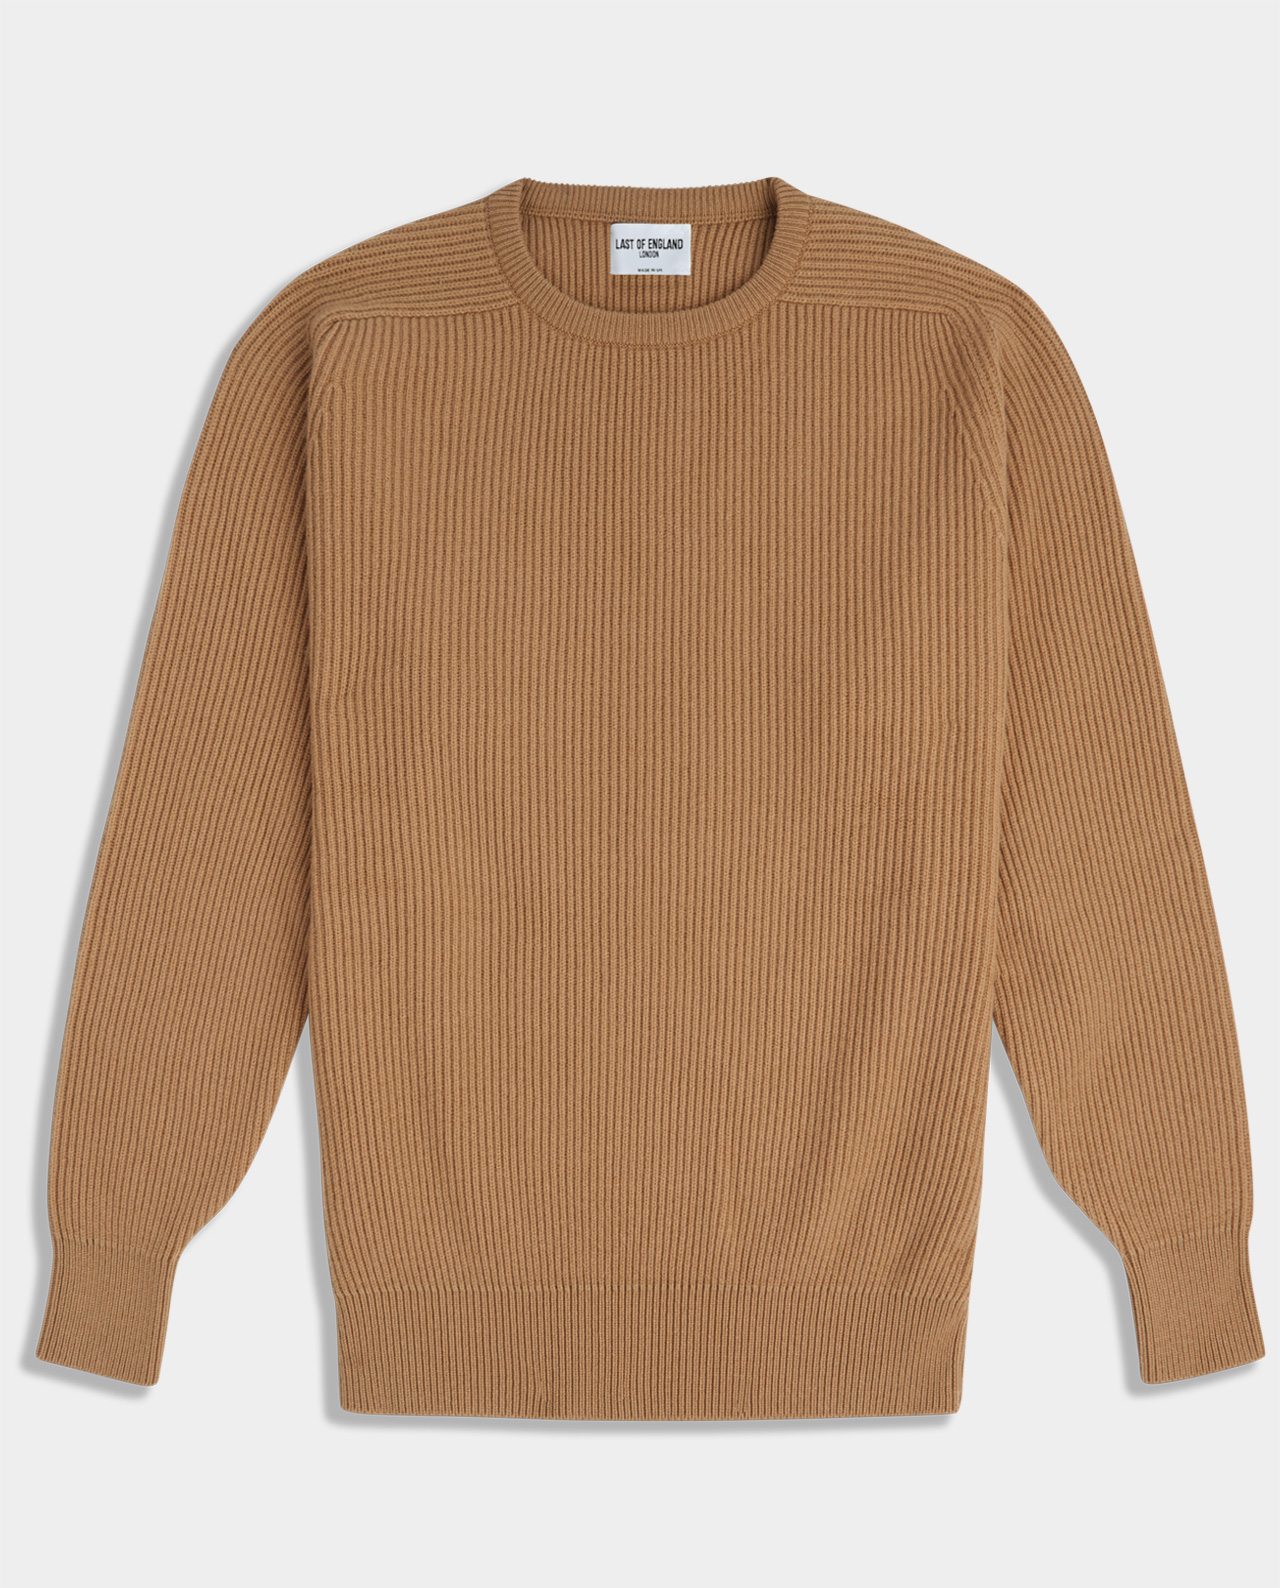 Last of England Fisherman Rib Camel Jumper